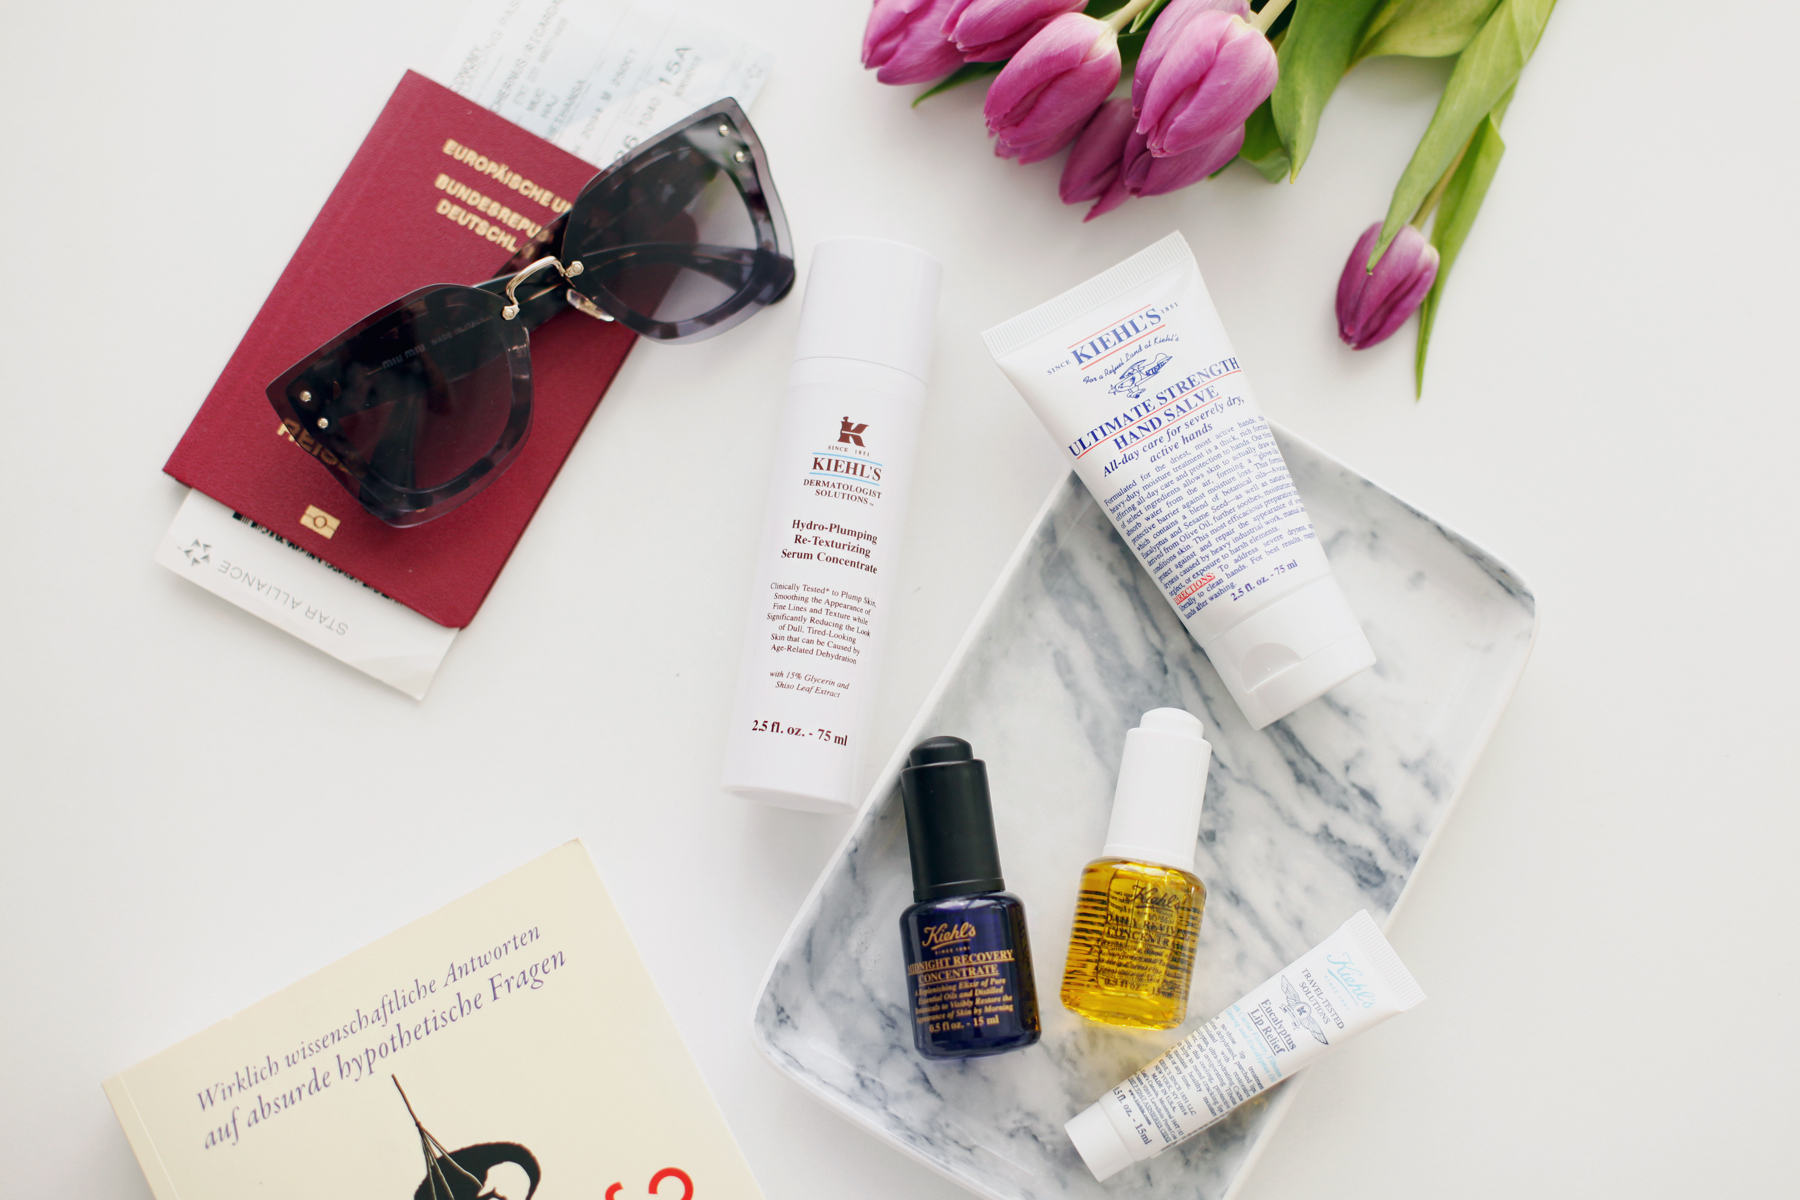 kiehl's travel essentials reise new york city world of kiehl's travelling miniature beauty beautyblogger handgepäck hand luggage sunglasses miu miu beauty tipps und tricks daily revival cats & dogs ricarda schernus beautyblogger düsseldorf 6